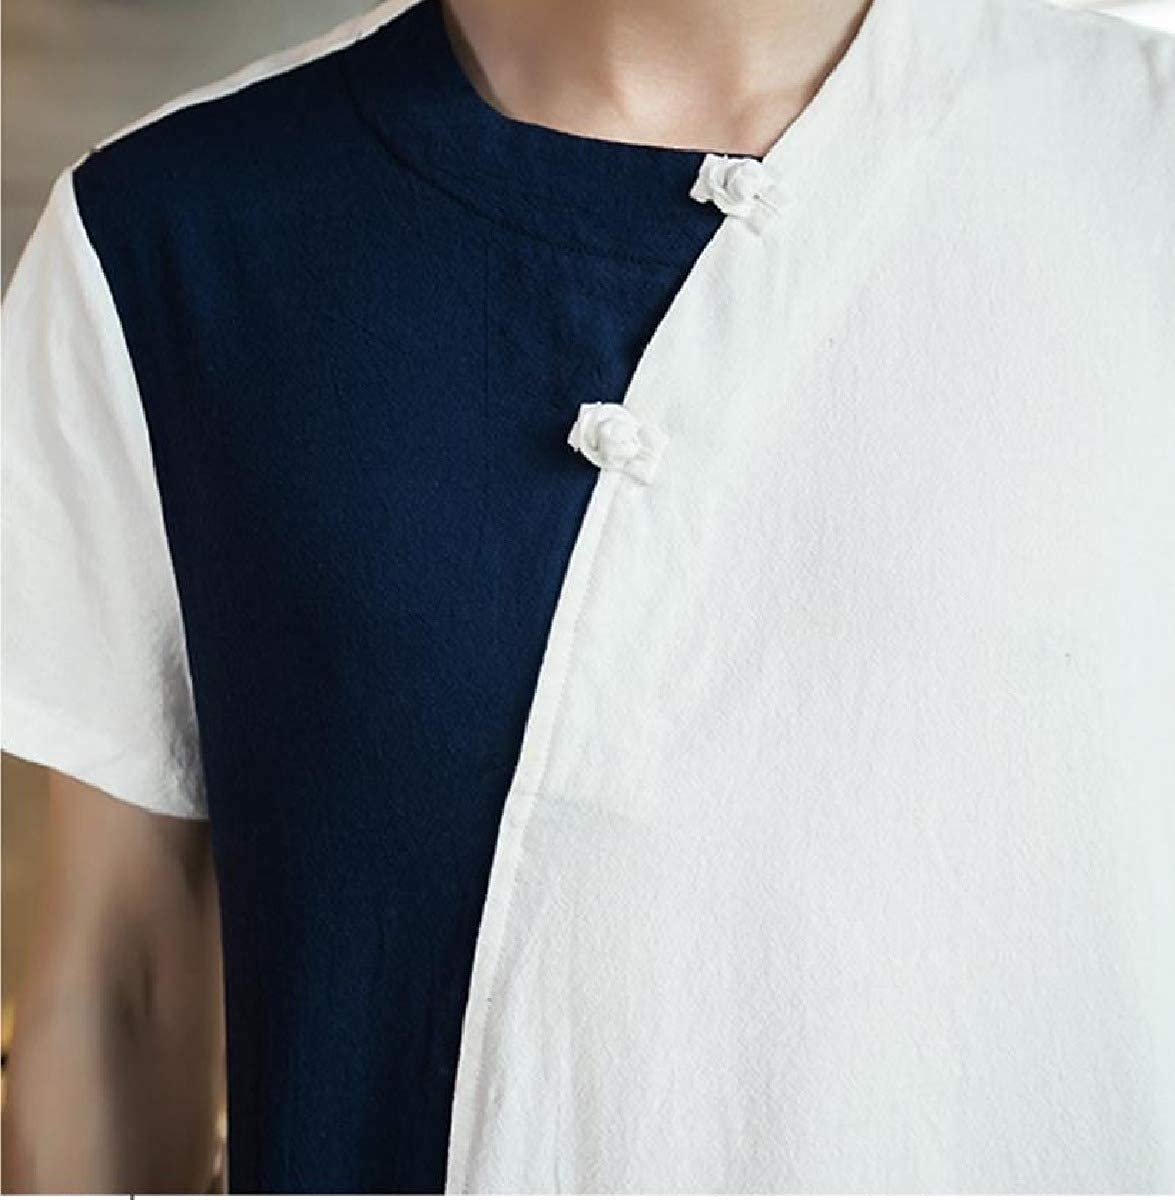 Zimaes-Men Casual Summer Contrast Chinese Style Comfort Soft Cotton Work Shirt